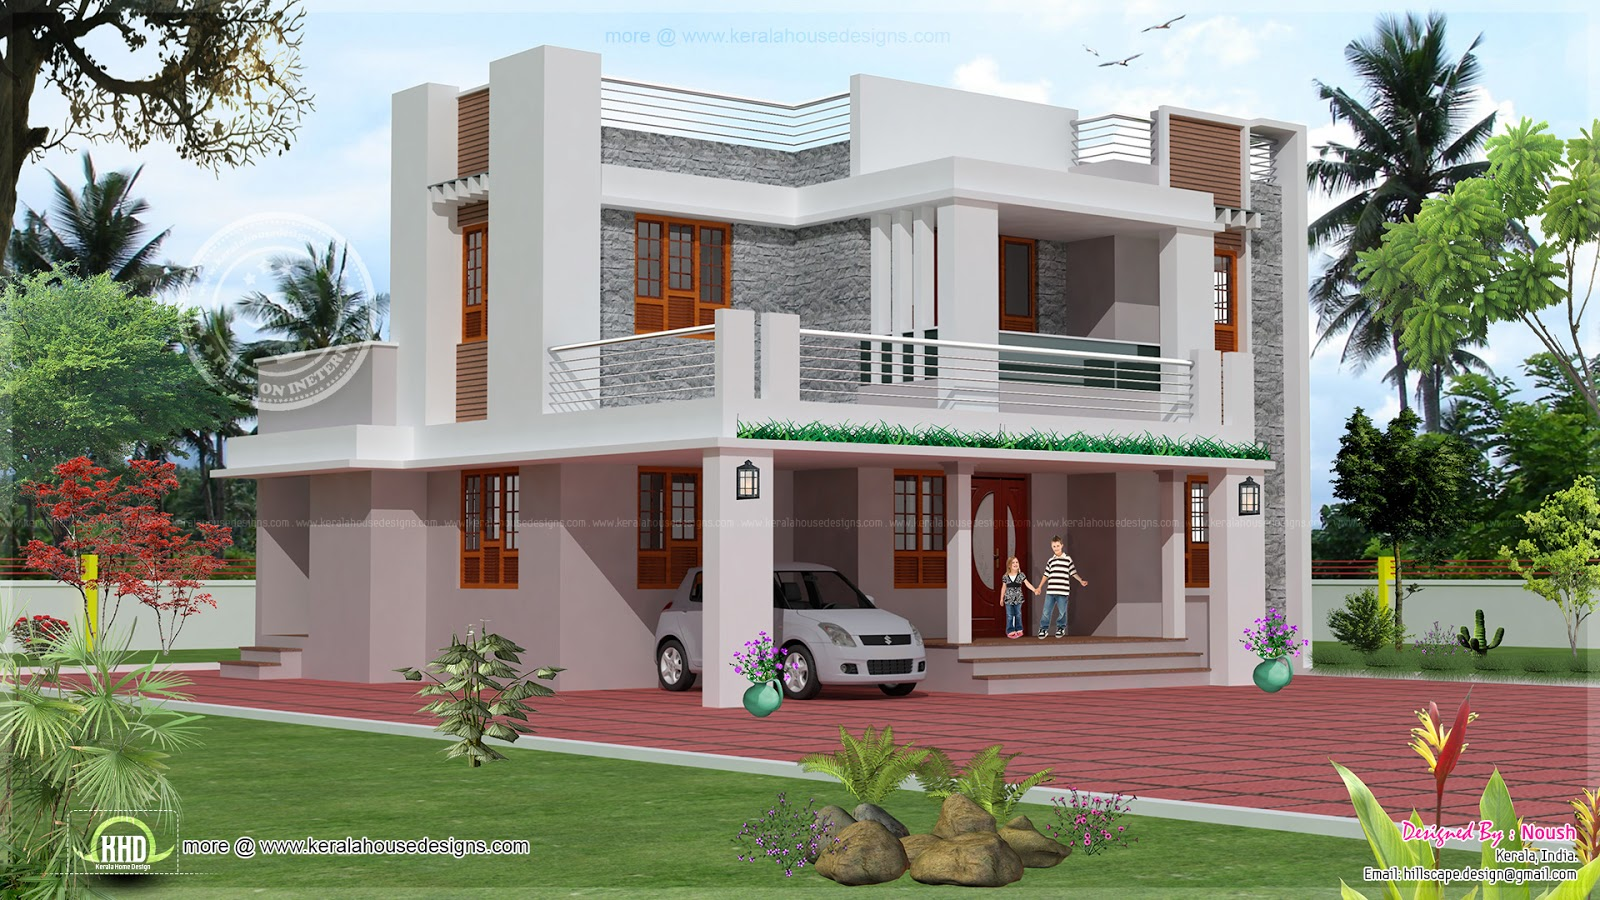 4 bedroom 2 story house exterior design home kerala plans for Building front design